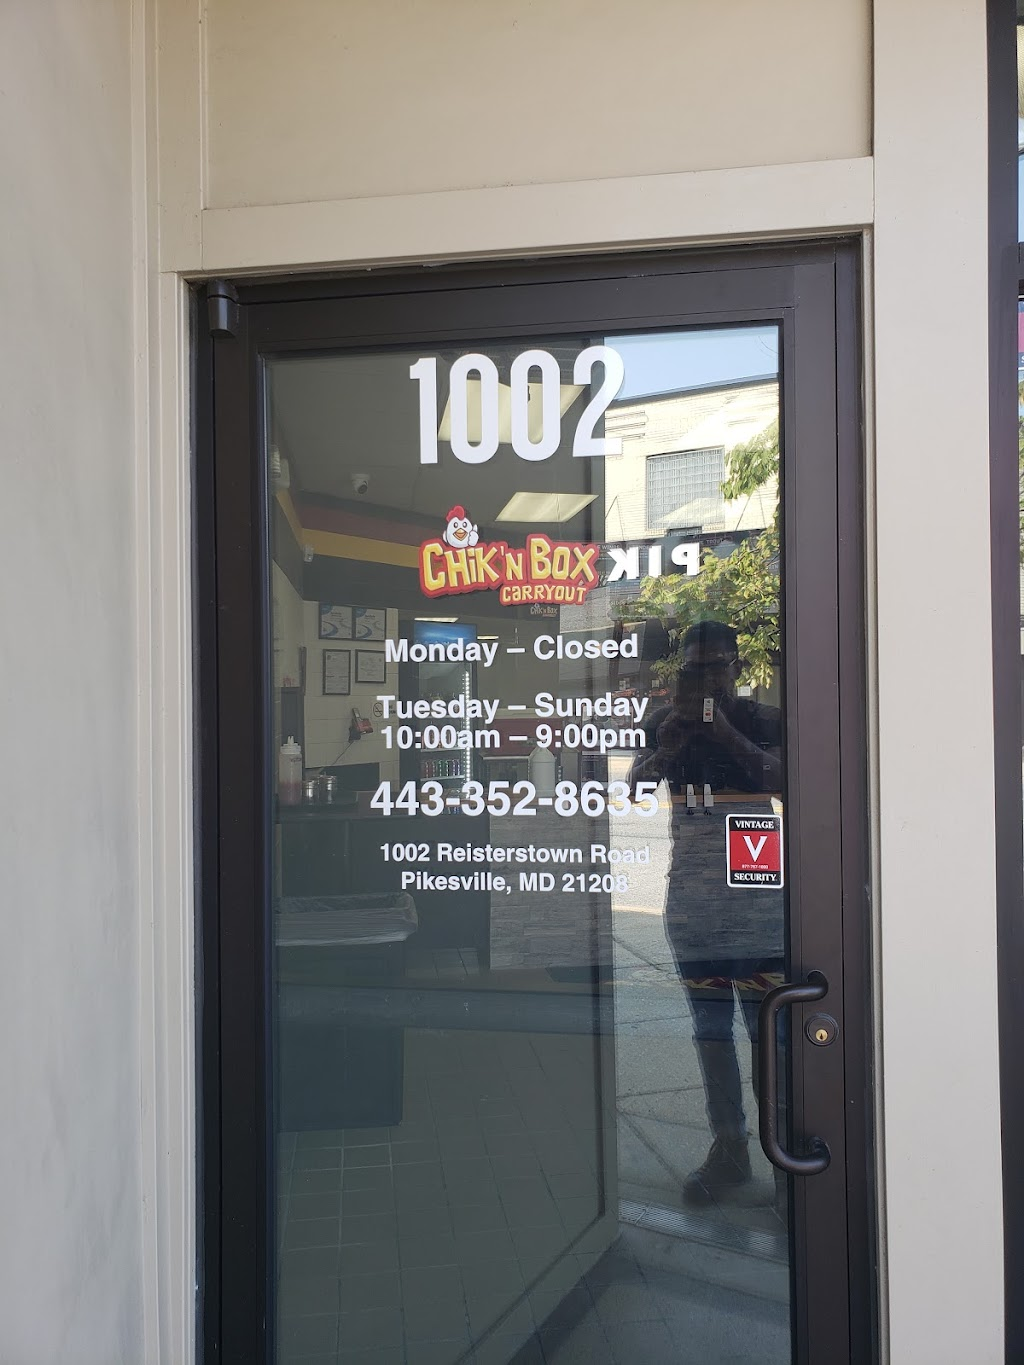 Chikn Box Carryout | restaurant | 1002 Reisterstown Rd, Pikesville, MD 21208, USA | 4433528635 OR +1 443-352-8635